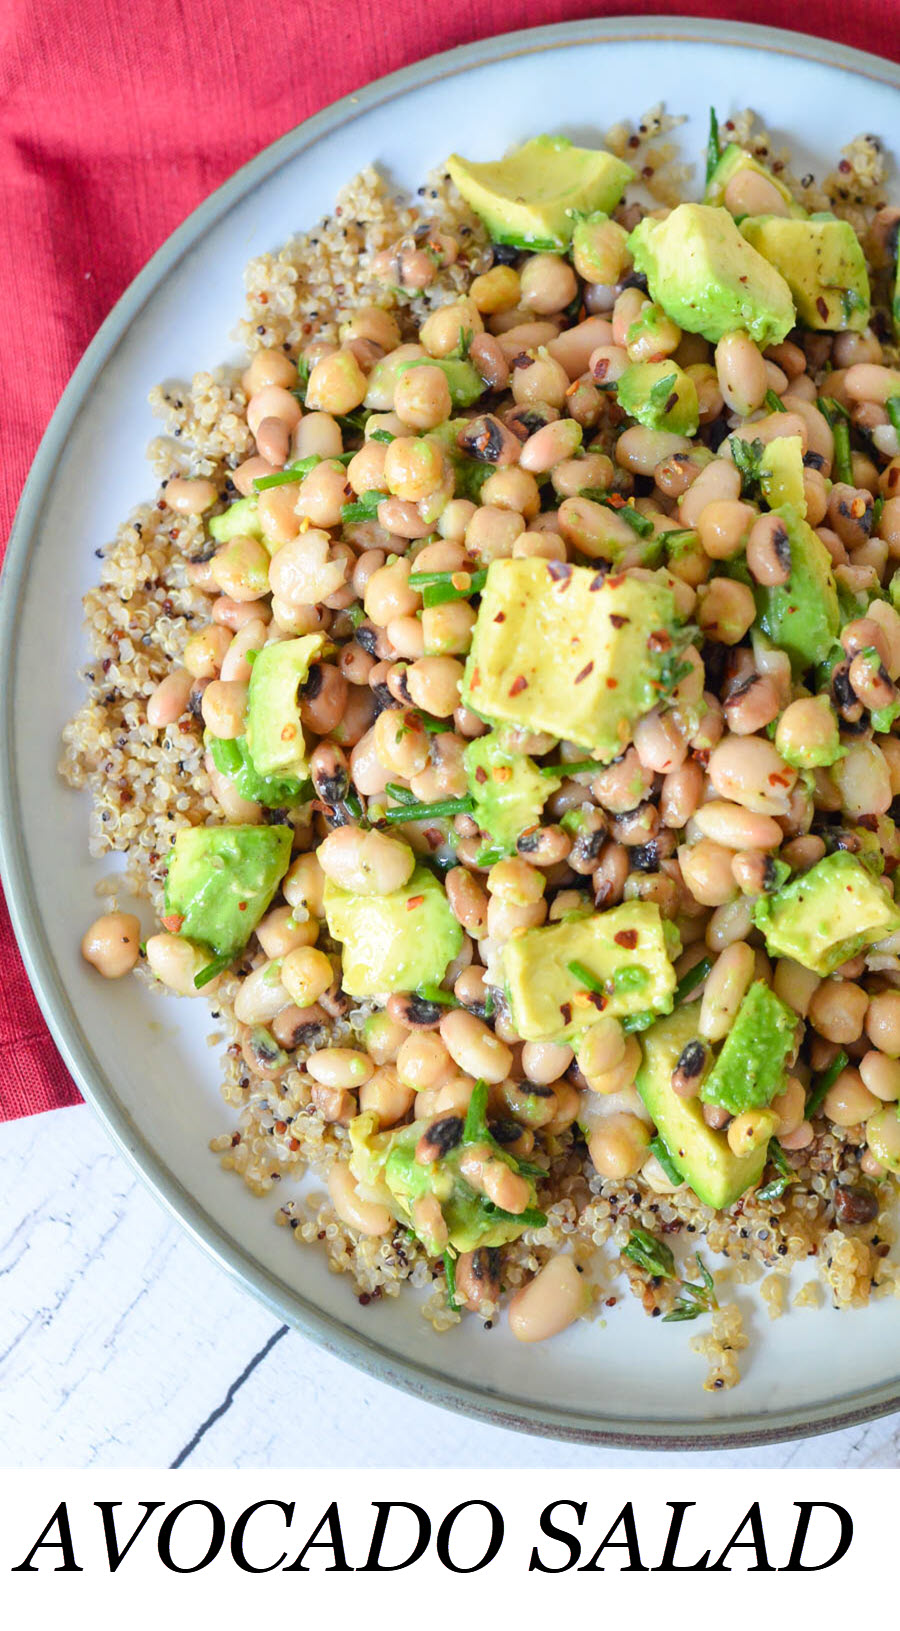 Avocado + White Bean Salad made with three kinds of white beans. A delicious, protein-filled side dish, salad topping, or entree. Healthy, Delicious, and it comes together in less than 5 minutes! #healthy #avocado #salad #sidedish #potluck #summerrecipes #lmrecipes #vegan #vegetarian #plantbased #glutenfree